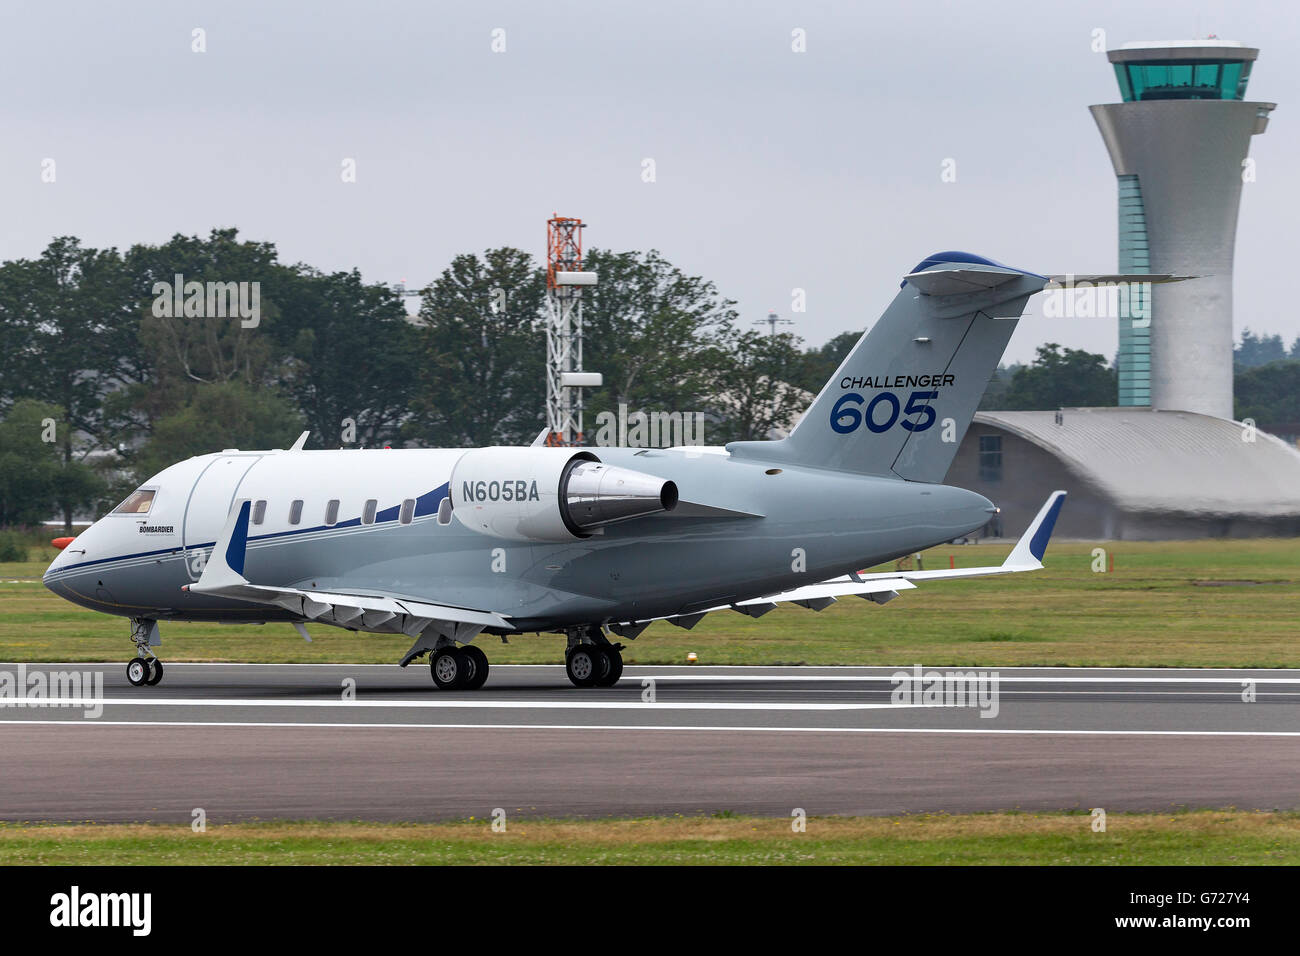 Bombardier Challenger 605 (CL-600-2B16) business jet aircraft N605BA - Stock